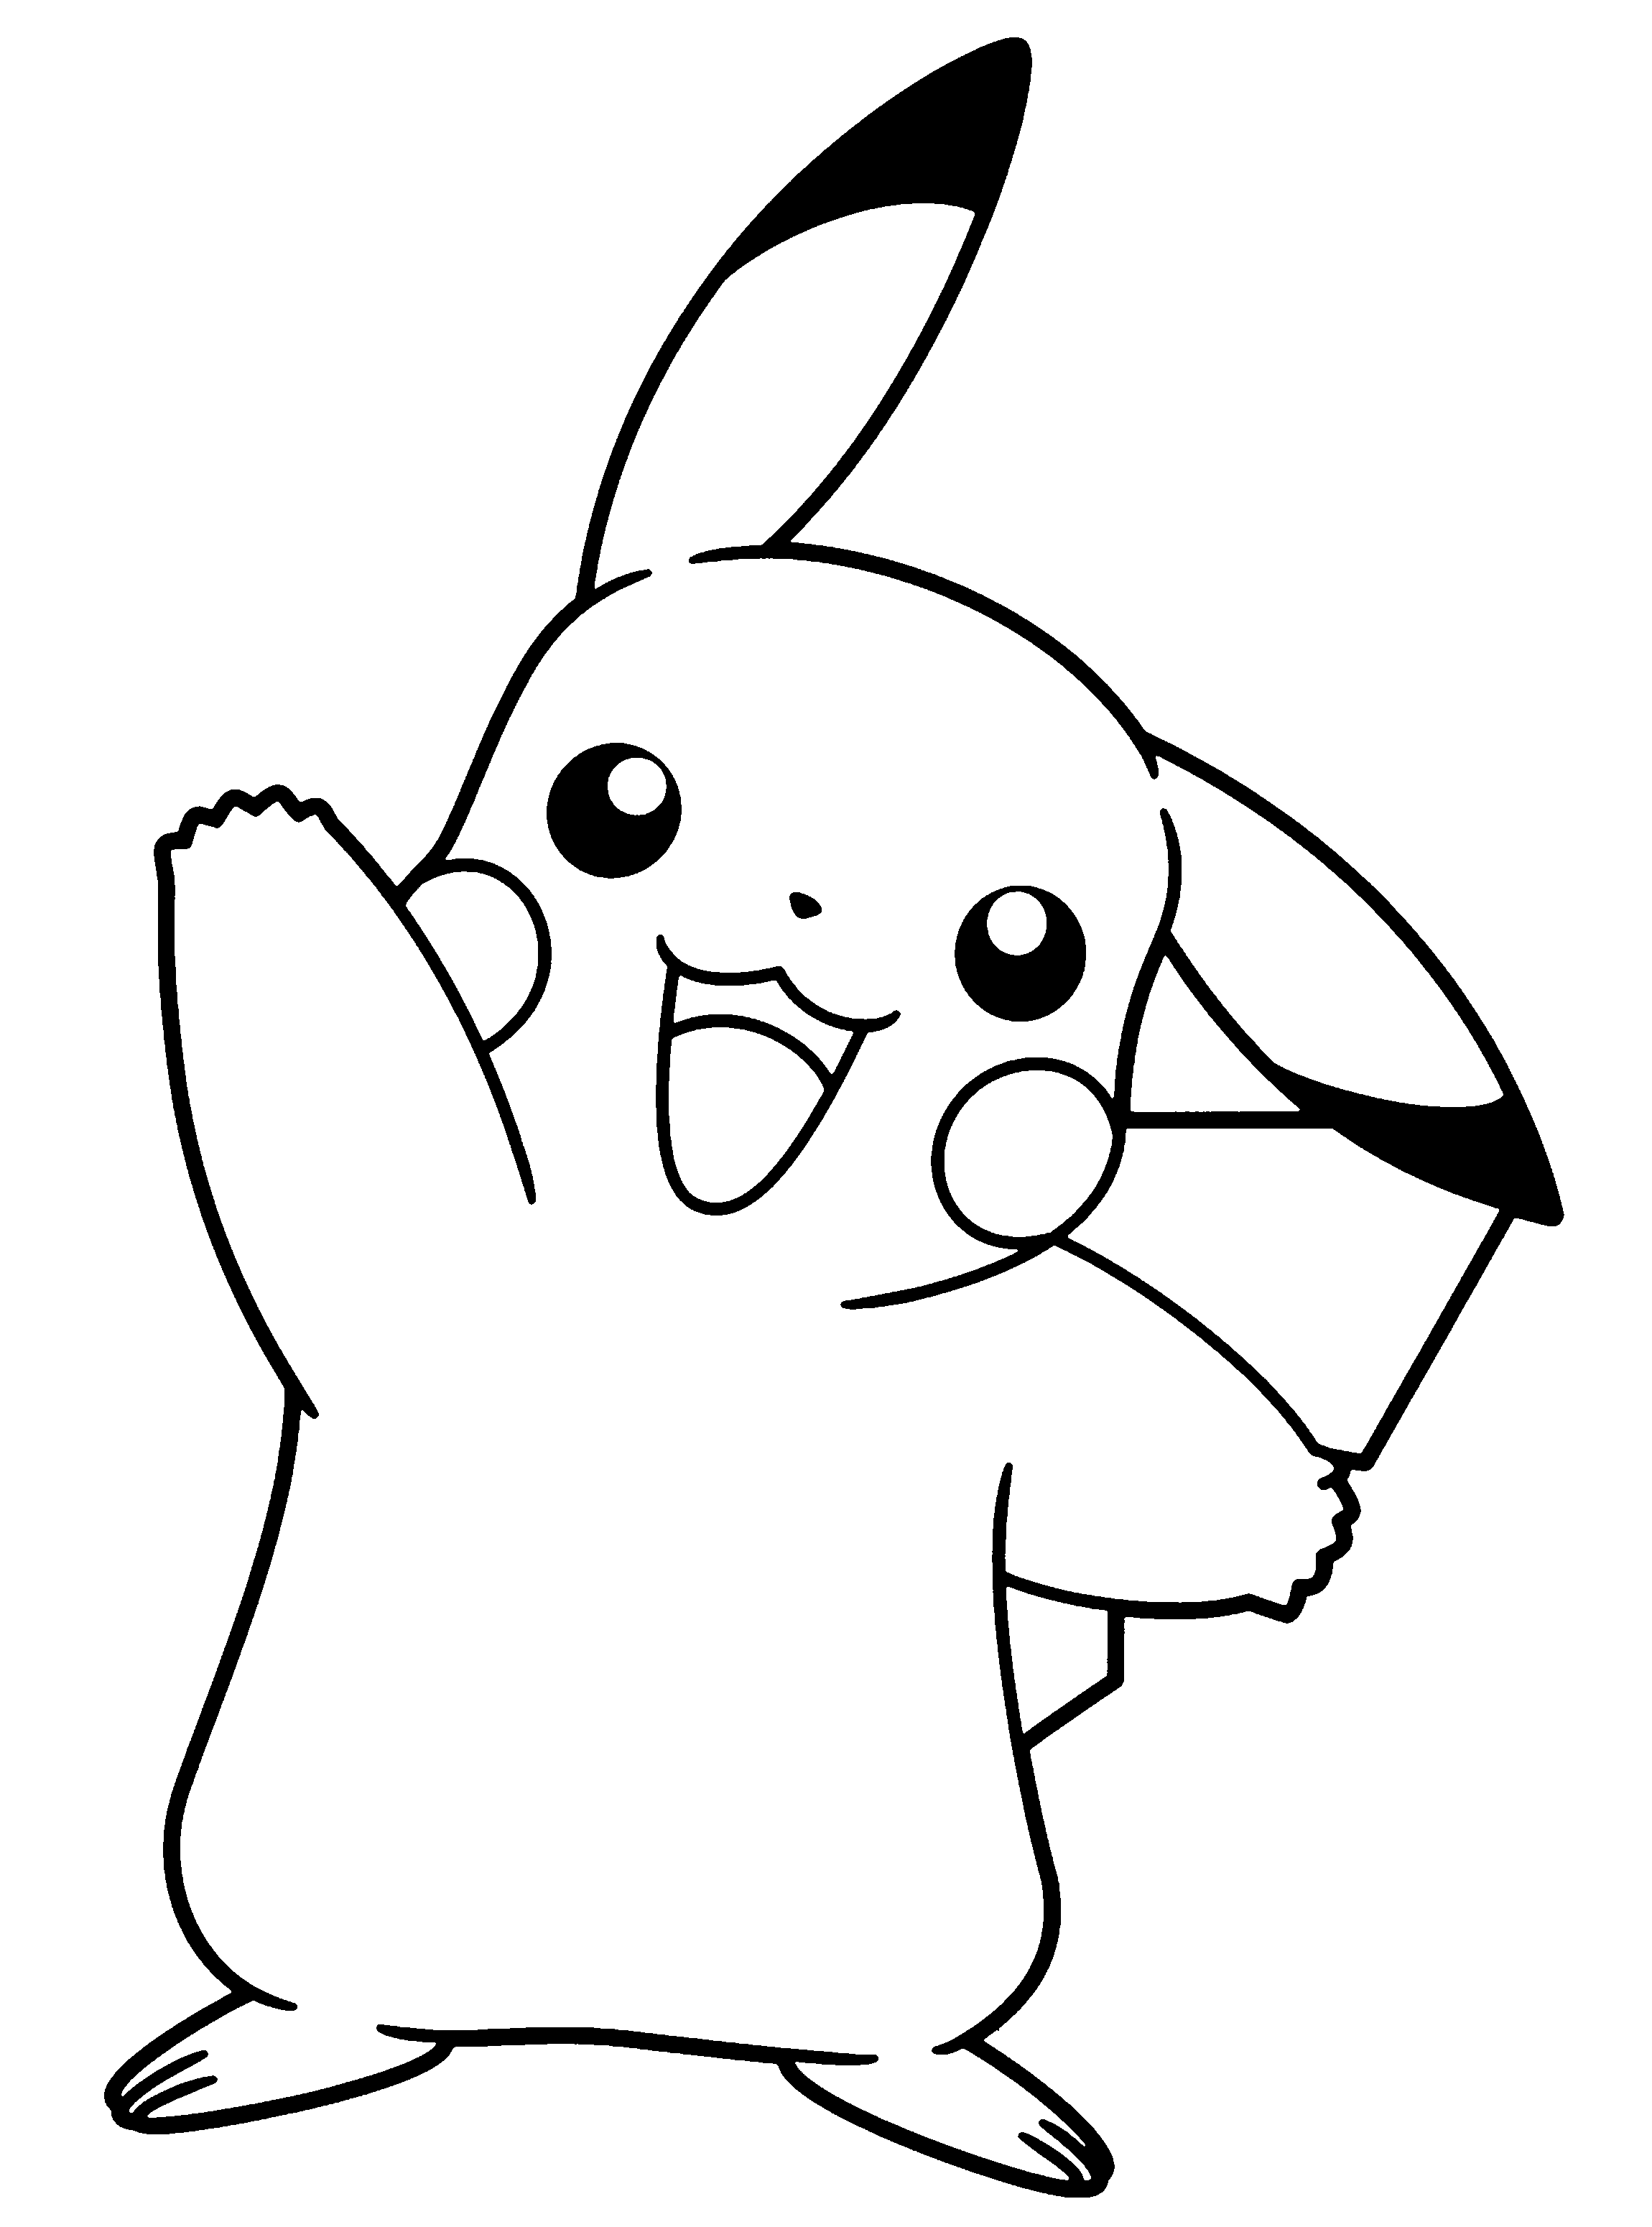 outline of pikachu pikachu from pokémon go coloring page free printable of outline pikachu